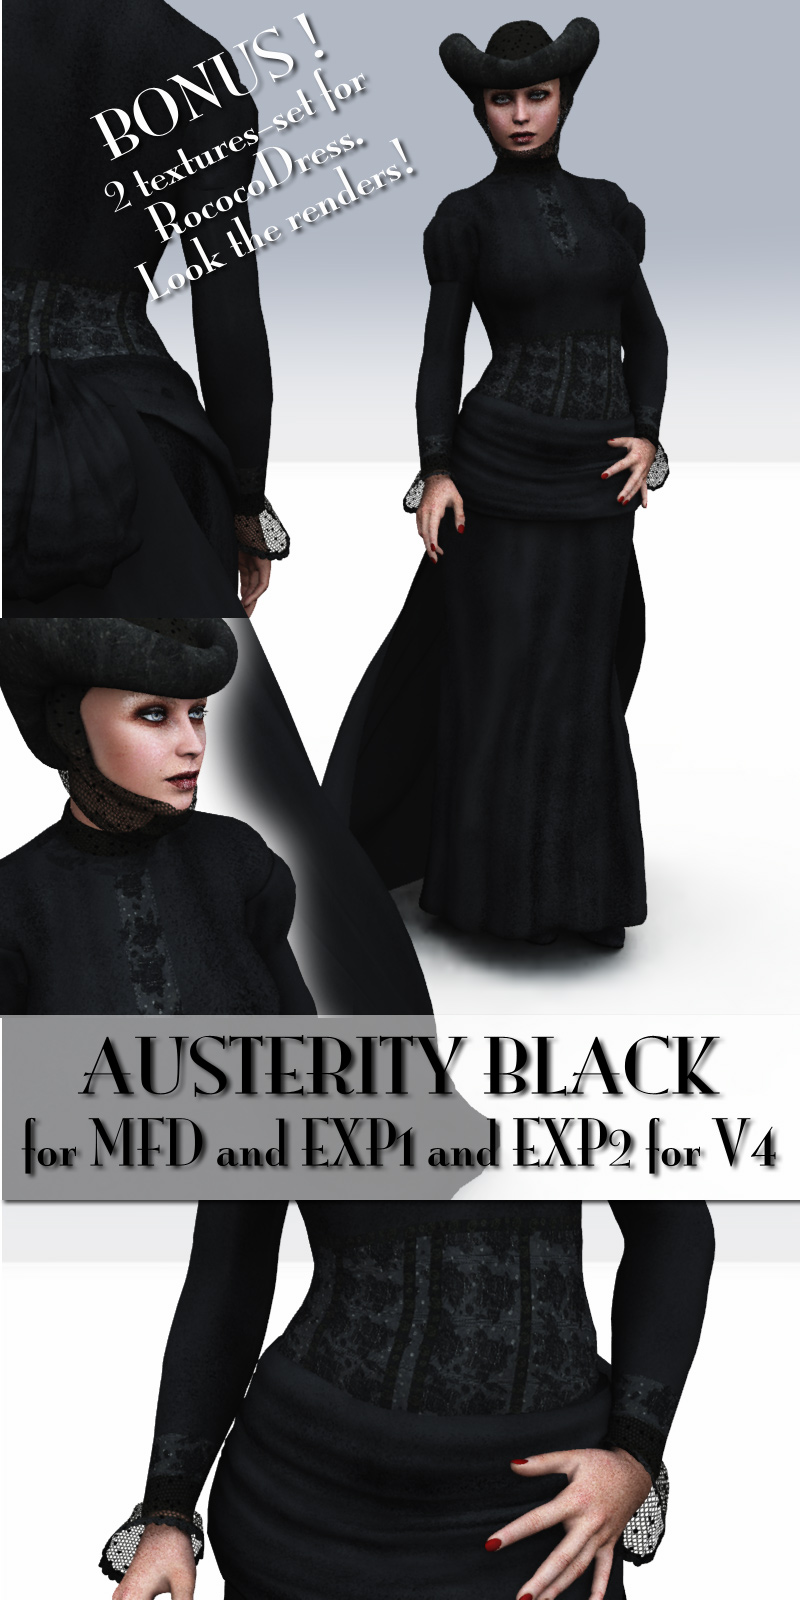 Austerity Black for MFD